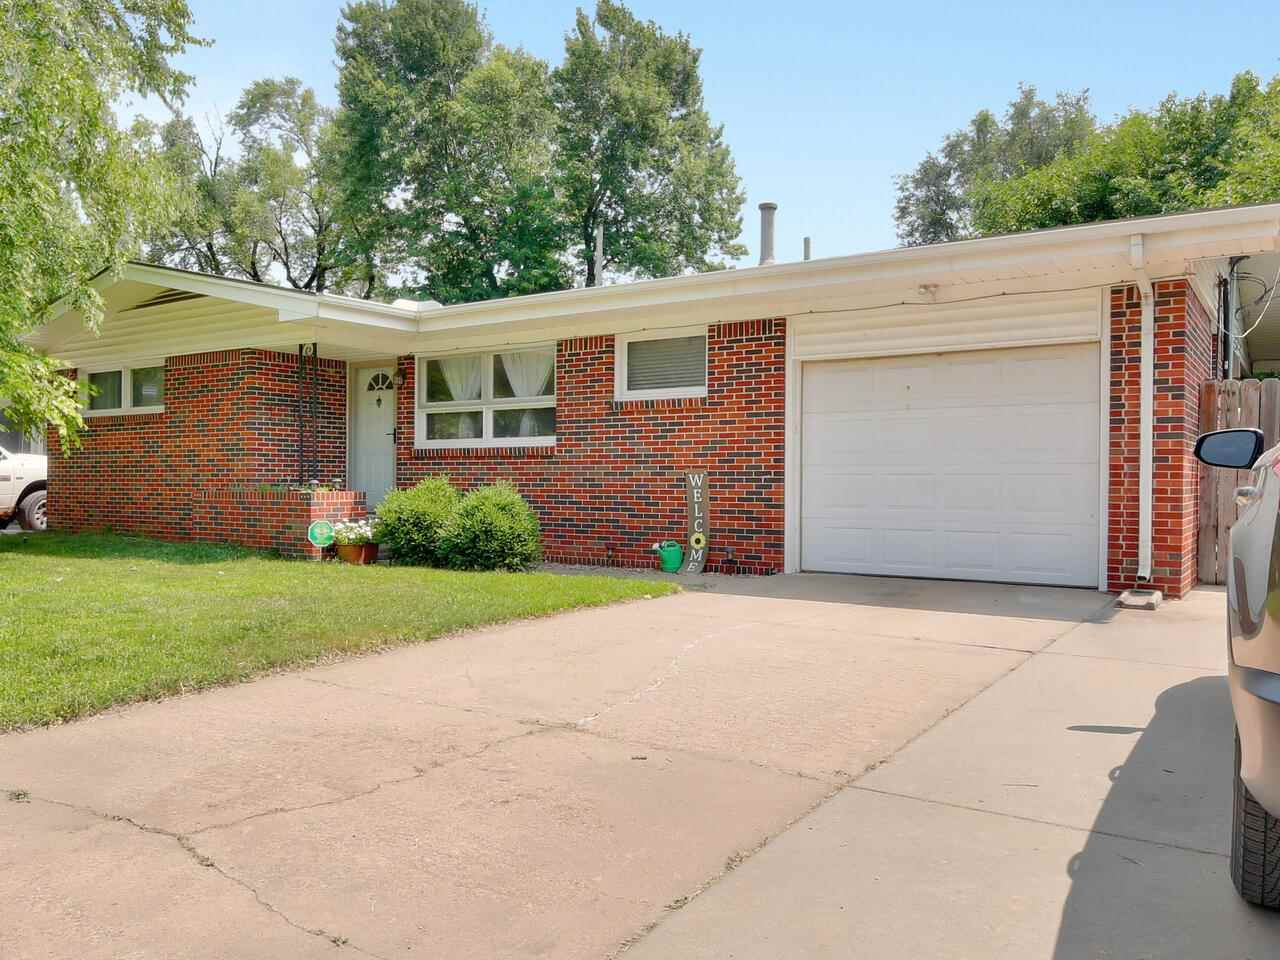 Adorable brick home in the Riverlawn Hieights Addition. The home has been tastefully updated with ne